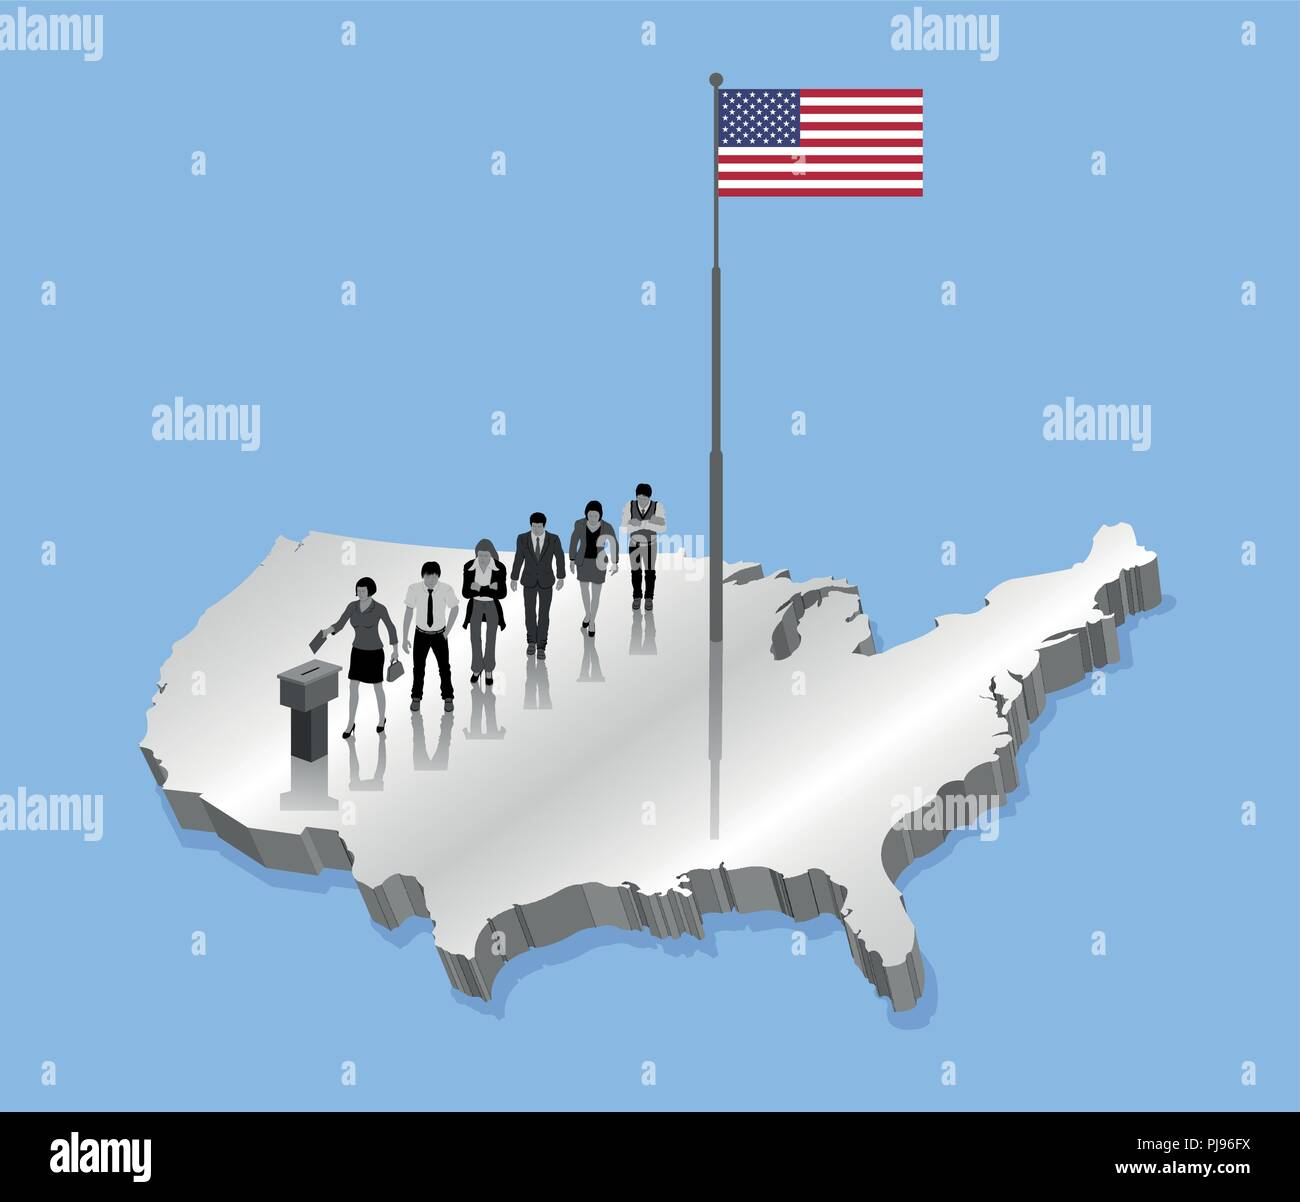 American citizens voting for USA election over an 3D US map with Flagpole. All the objects, shadows and background are in different layers. - Stock Vector